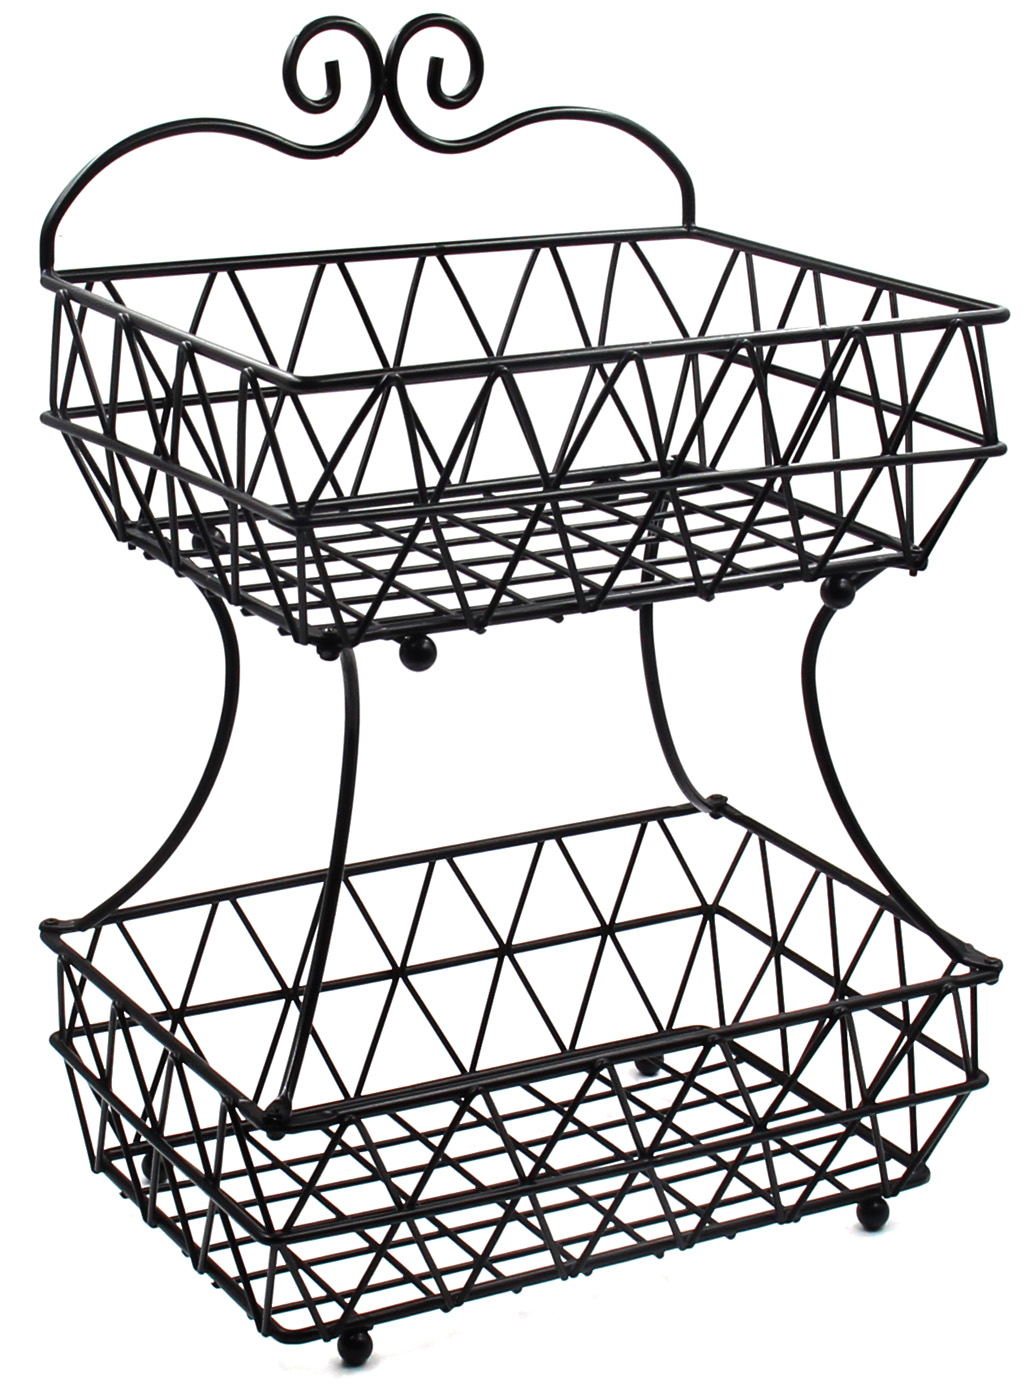 1030x1394 Esylife 2 Tier Removable Metal Bread Basket Fruit Baskets Stand